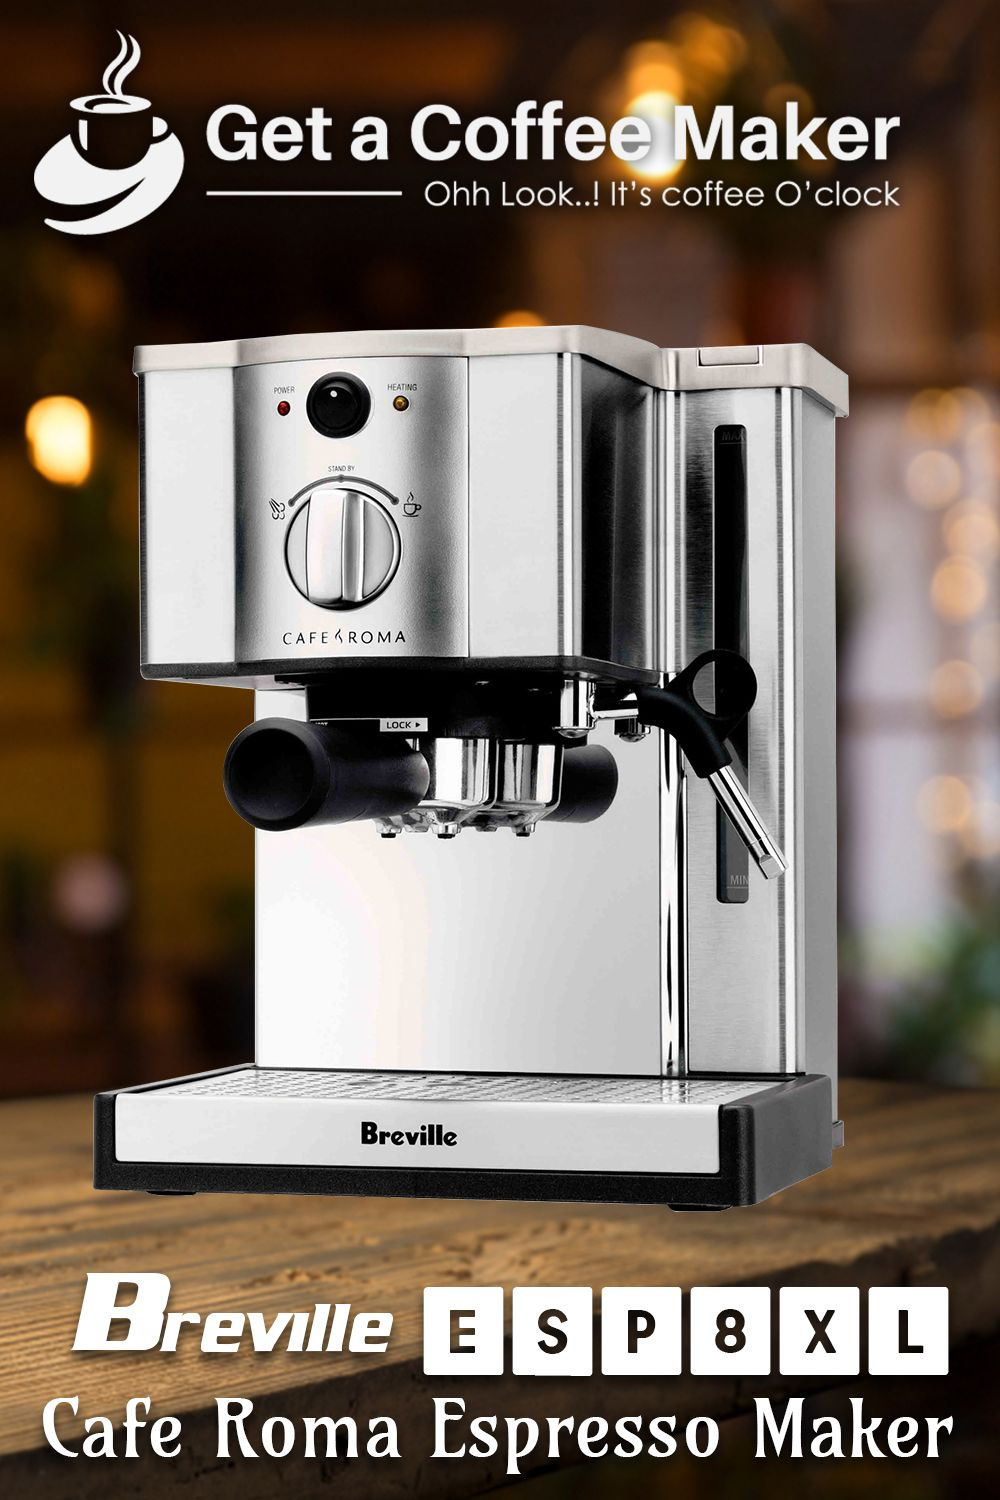 Top 10 Home Espresso Machines June 2020 Reviews Buyers Guide Home Espresso Machine Best Home Espresso Machine Single Cup Coffee Maker